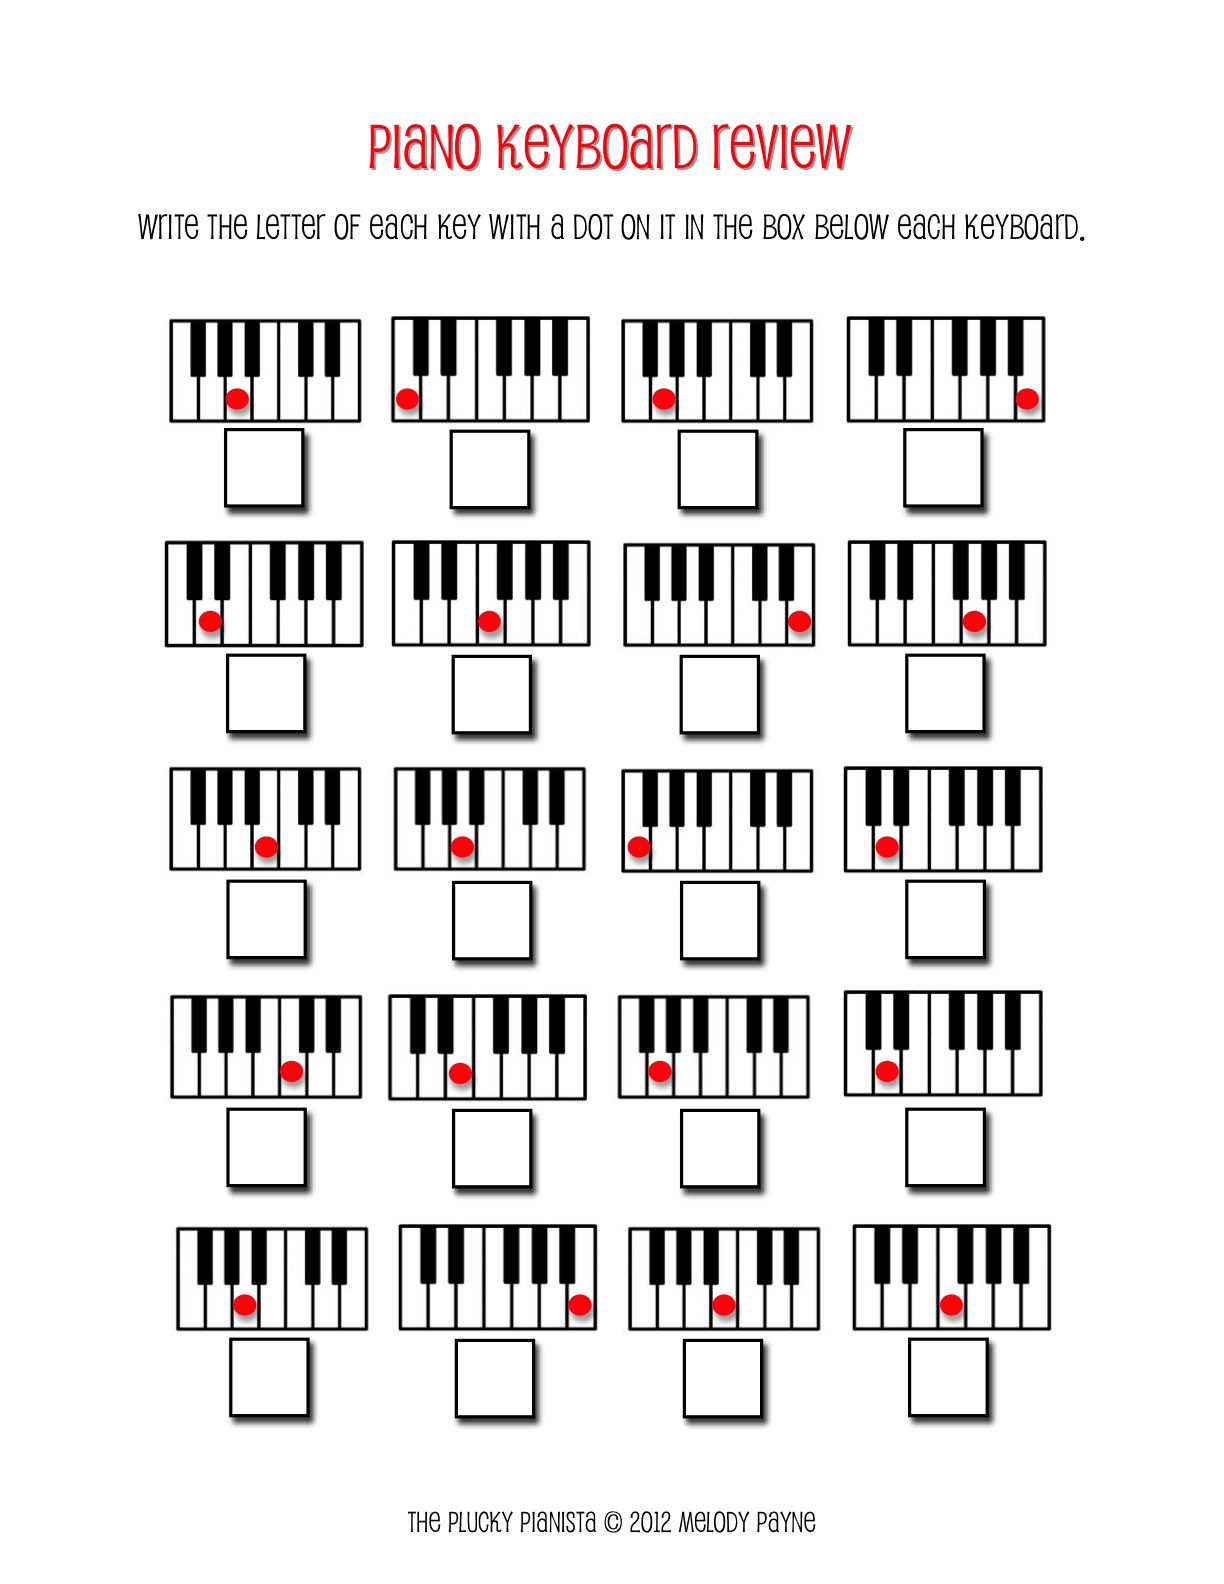 Worksheets Keyboard Worksheet piano keyboard review lessons pinterest the plucky pianista review